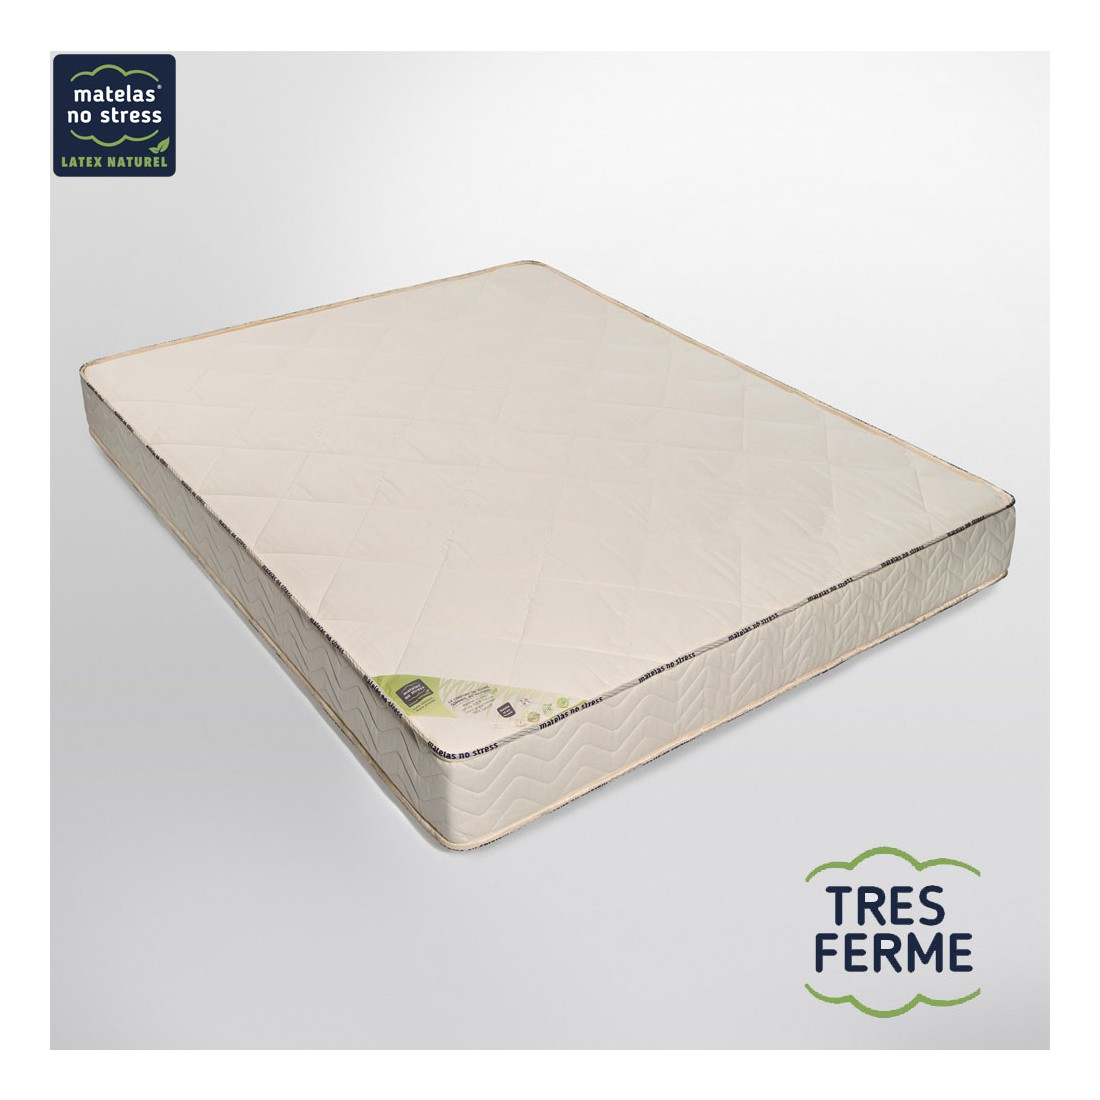 matelas latex naturel 160x200 tr s ferme. Black Bedroom Furniture Sets. Home Design Ideas